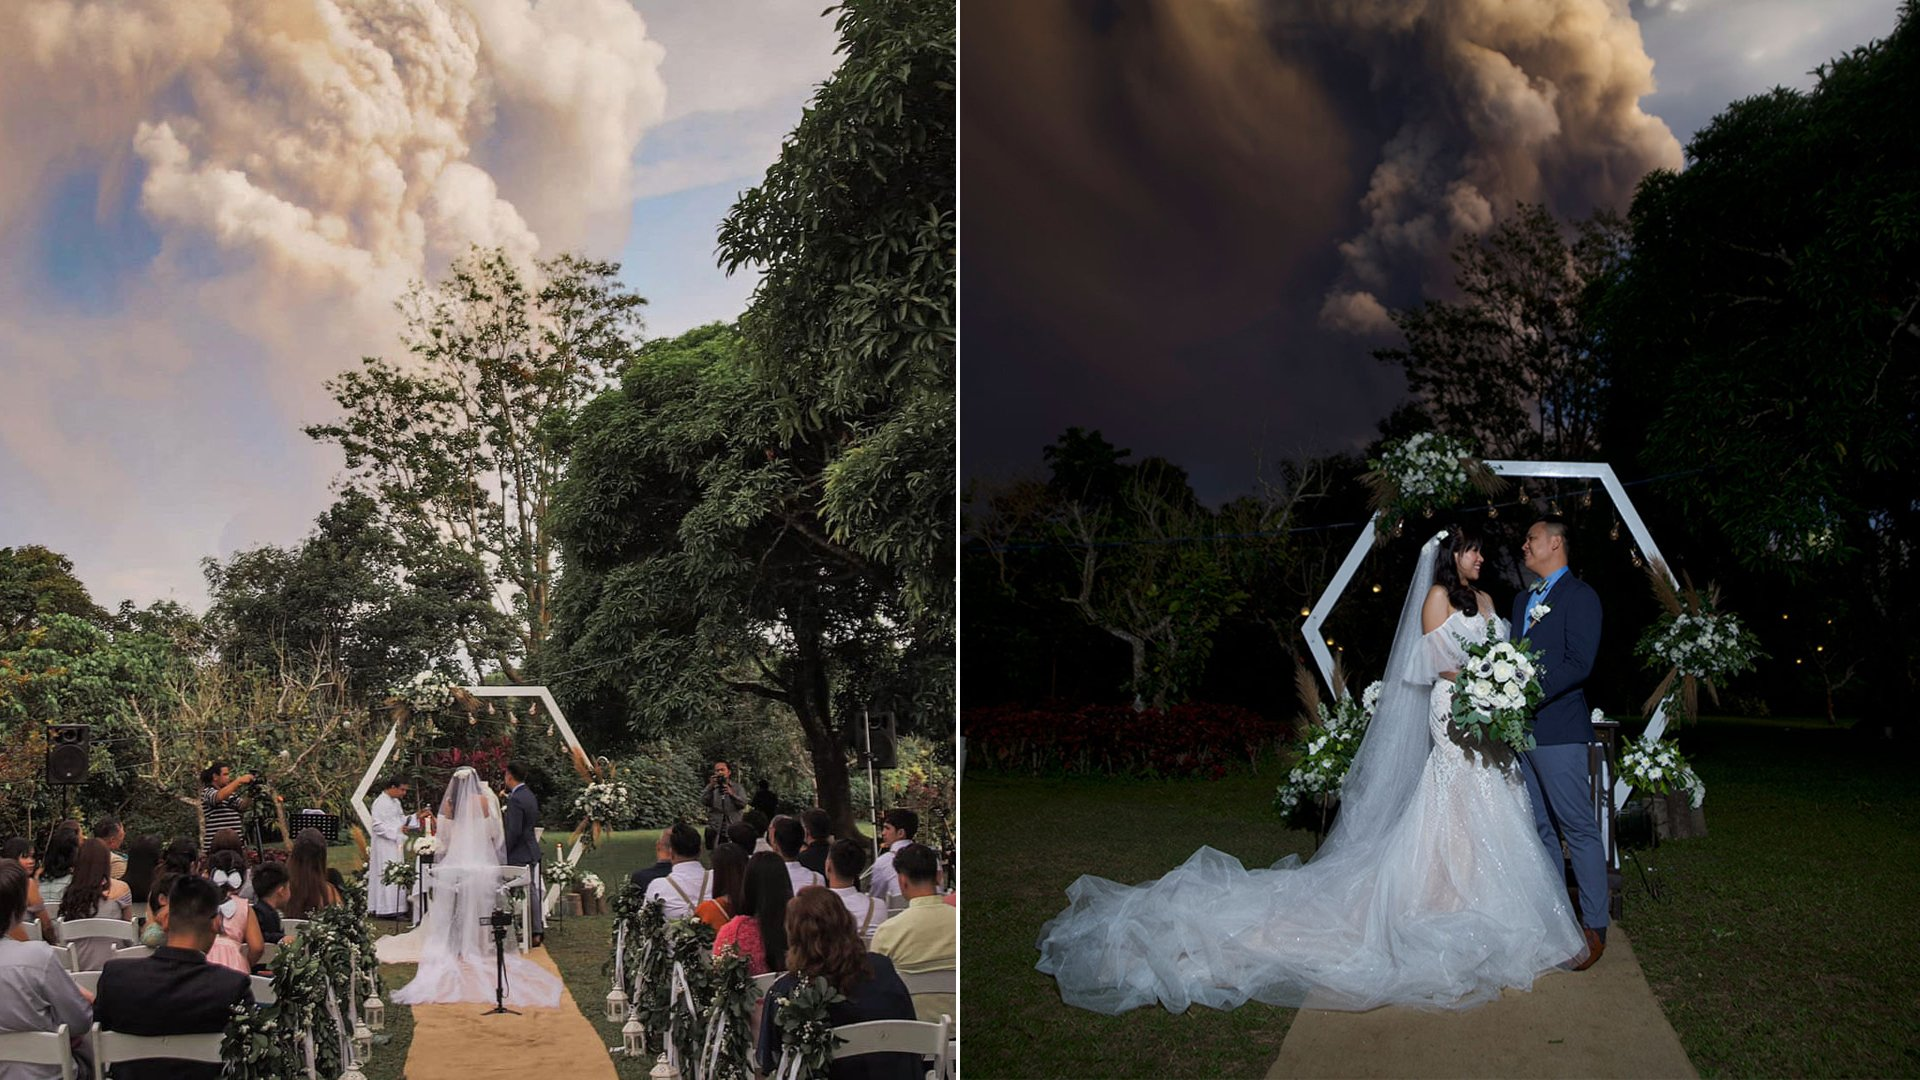 Chino and Kat Vaflor were tying the knot at a venue 10 miles from the Taal Volcano when wedding photographer Randolf Evan captured dramatic shots of the couple with the ash plume seemingly overhead. (Credit: Randolf Evan Photograph via CNN)